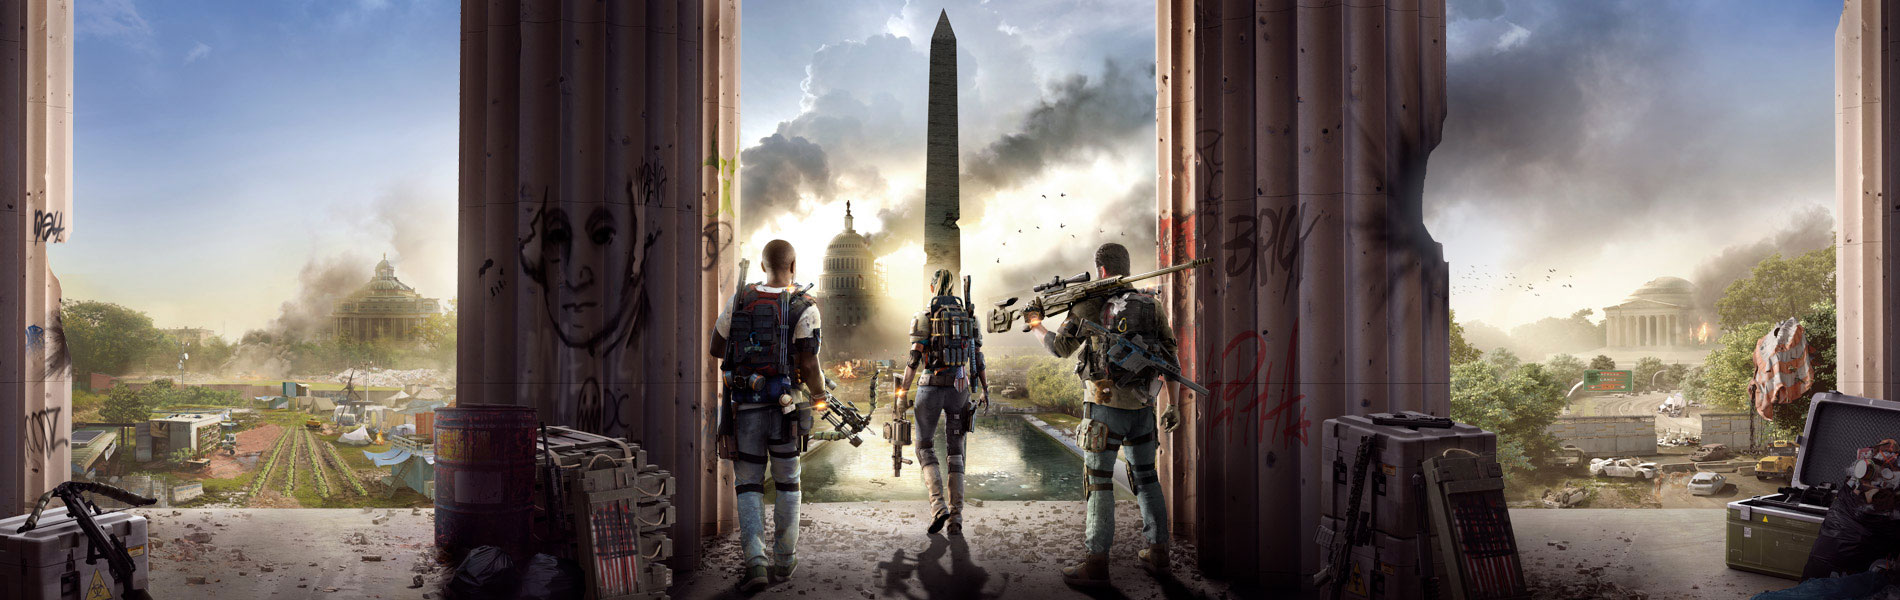 The Division 2 review – a good game divided